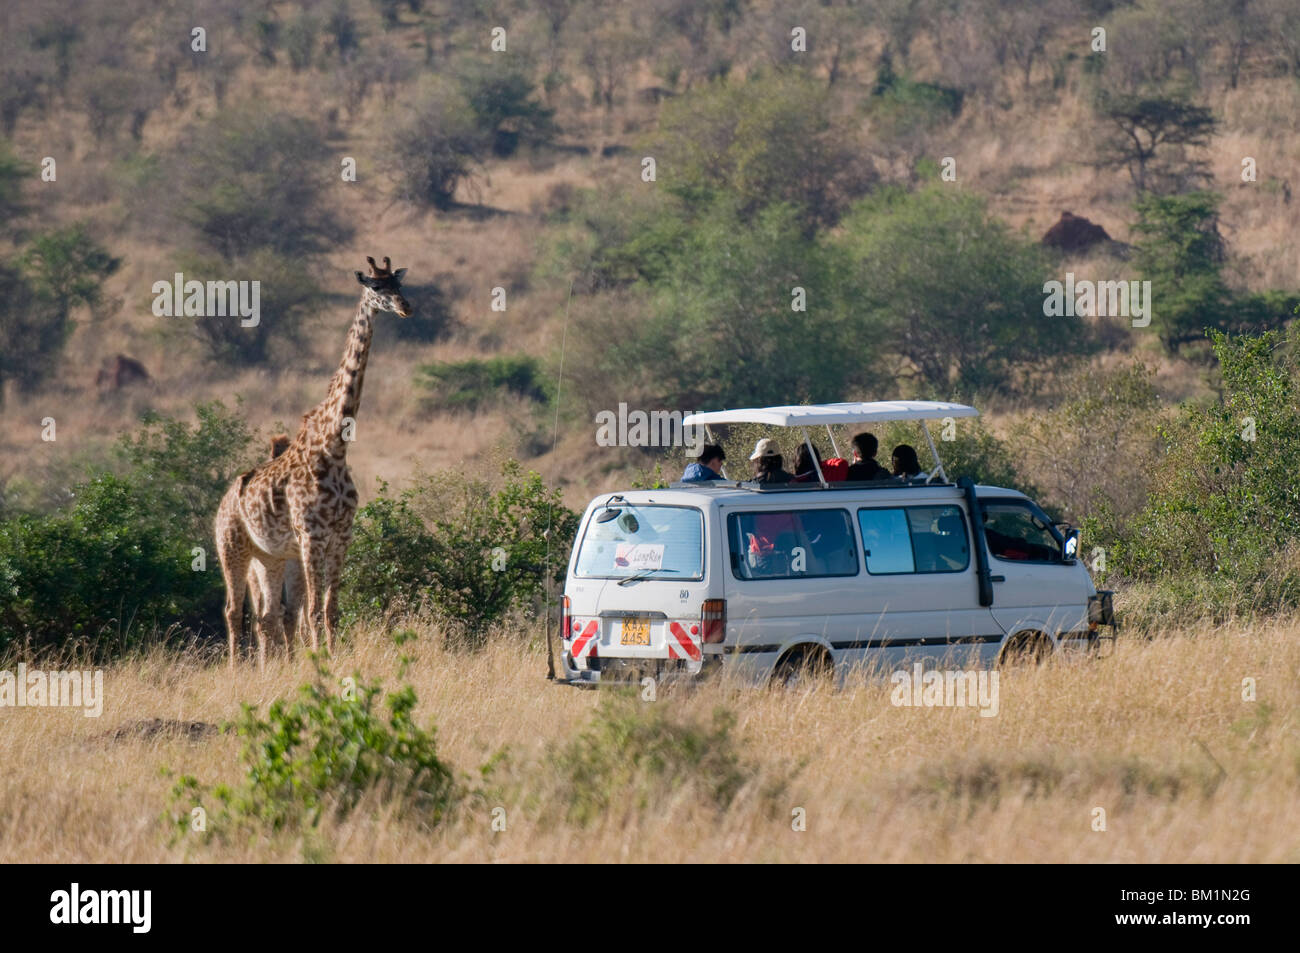 Tourists on safari watching giraffes, Masai Mara National Reserve, Kenya, East Africa, Africa - Stock Image